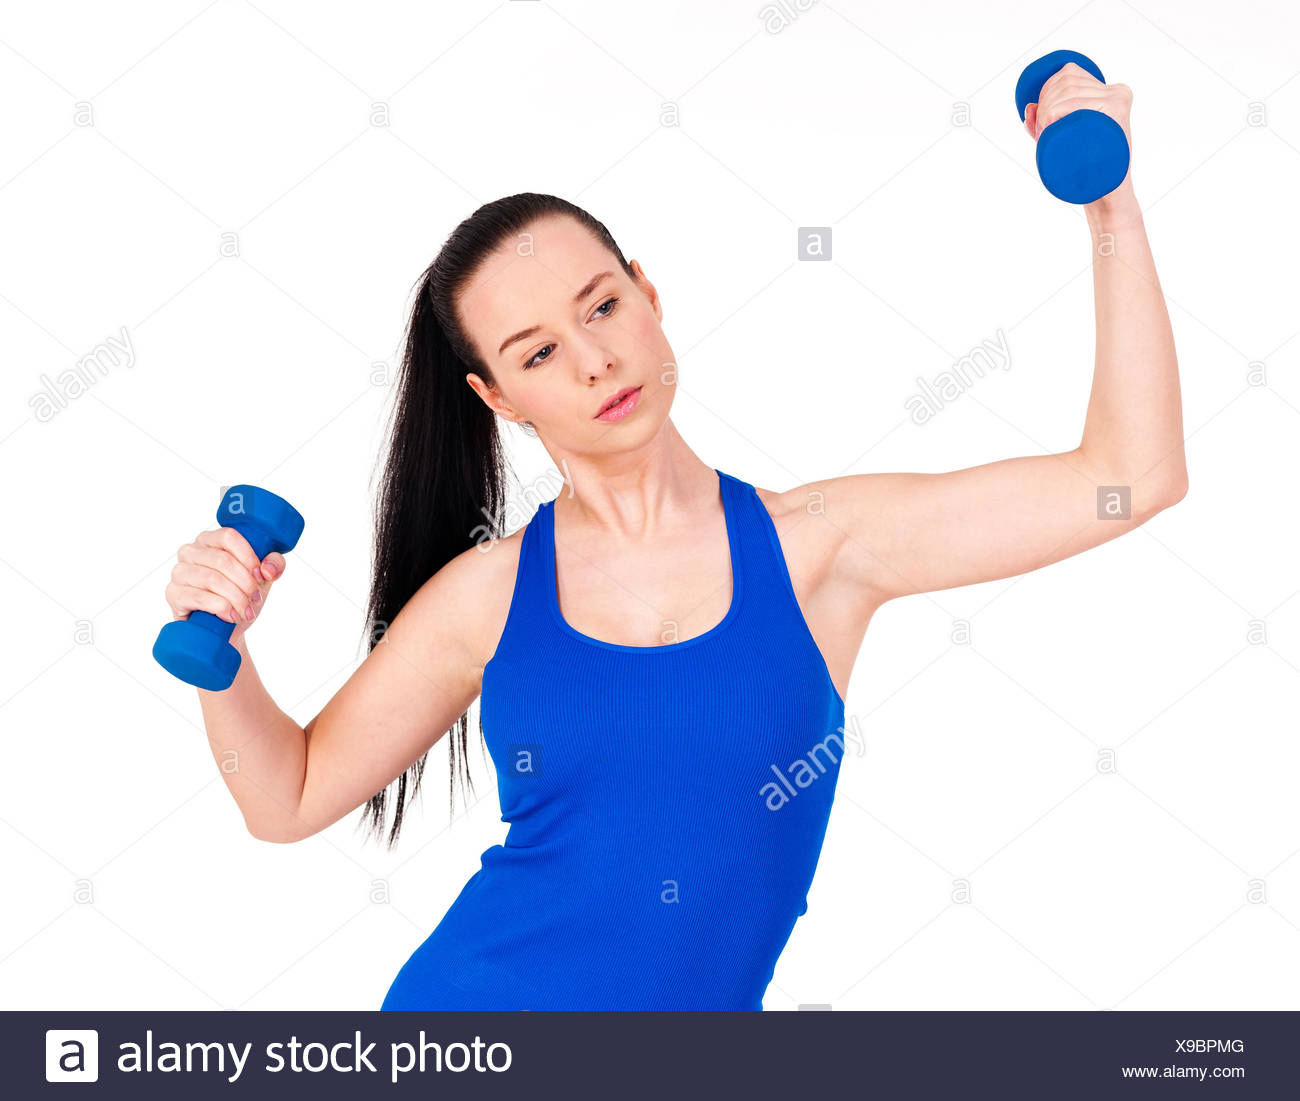 Focus woman exercising with dumbbell Debica, Poland - Stock Image